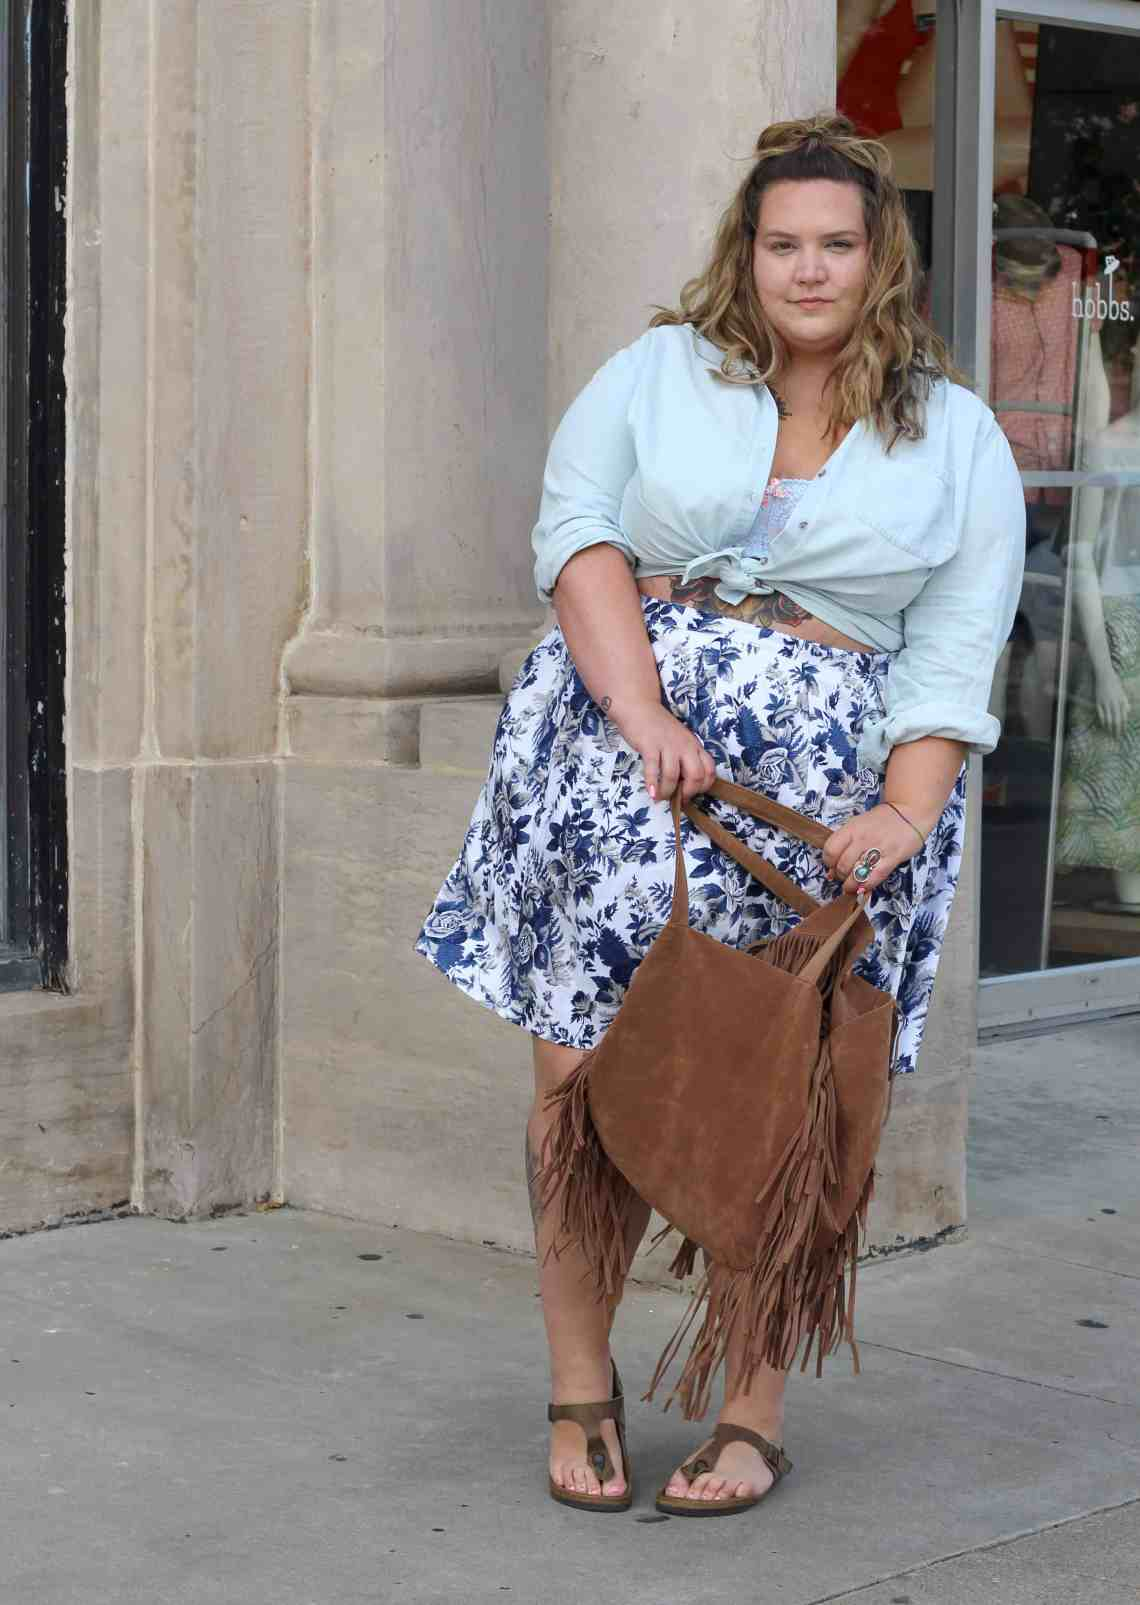 HOW TO NOT BUTTON YOUR SHIRT AT BRUNCH - Fat Girl Flow